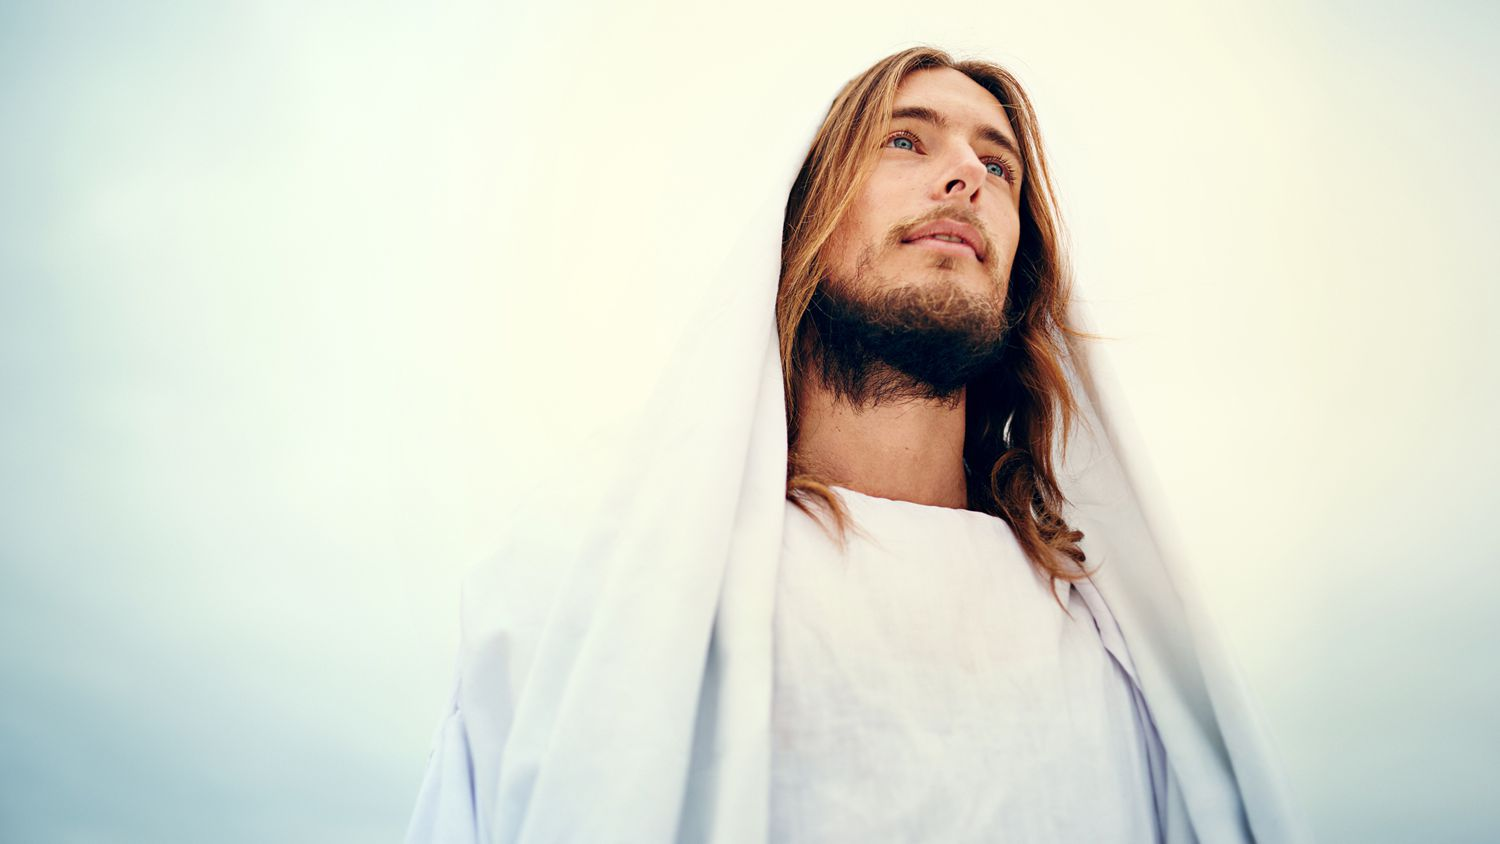 Profile of Jesus Christ, the Central Figure in Christianity